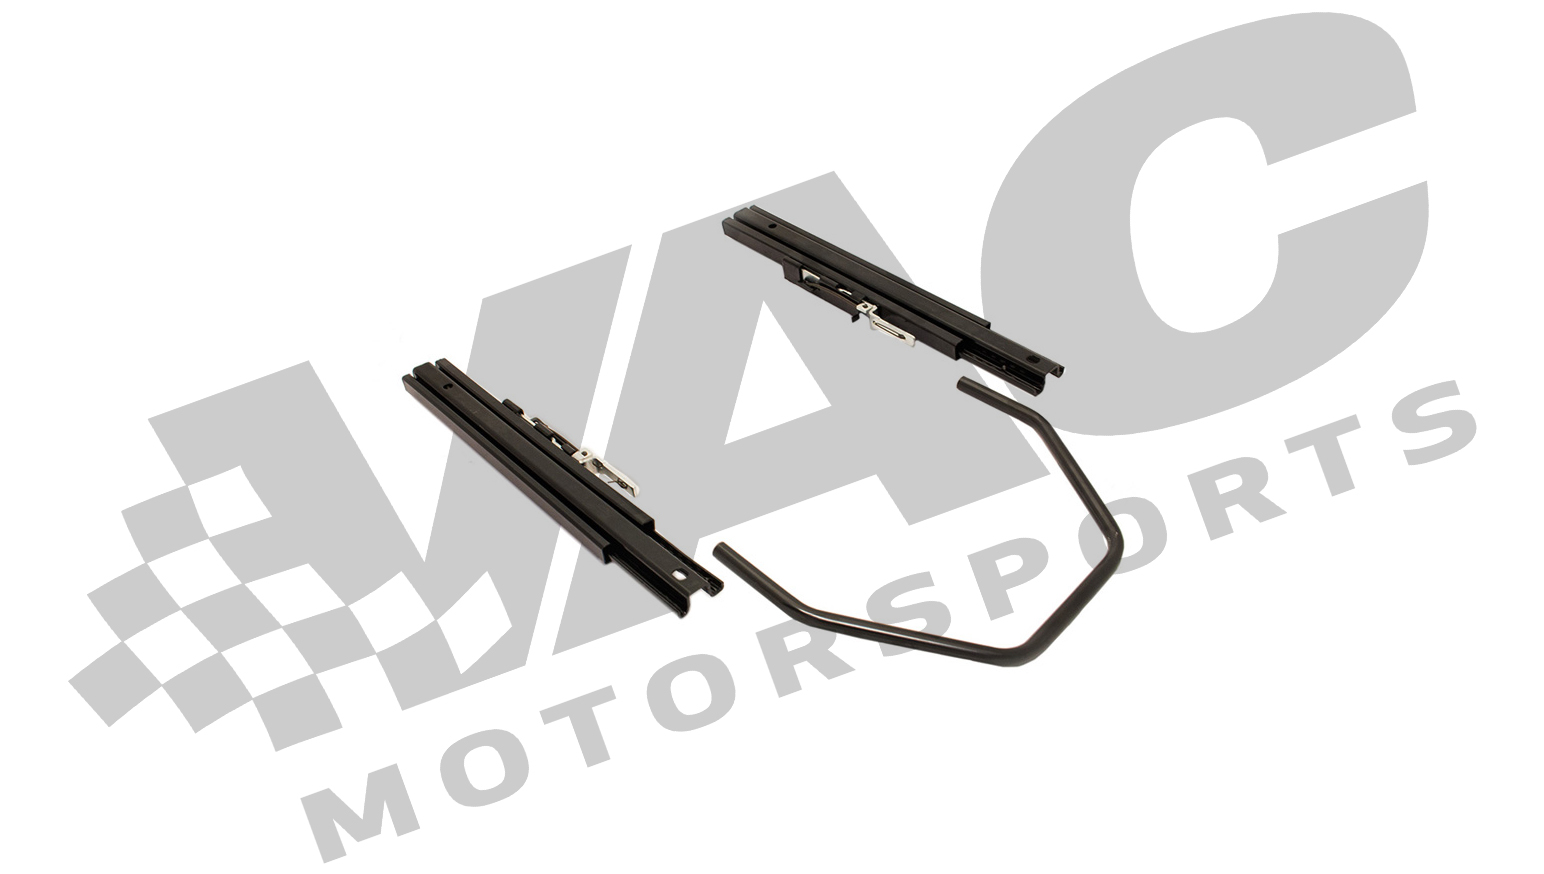 VAC - Seat Sliders (for Sport/Race seats) MAIN